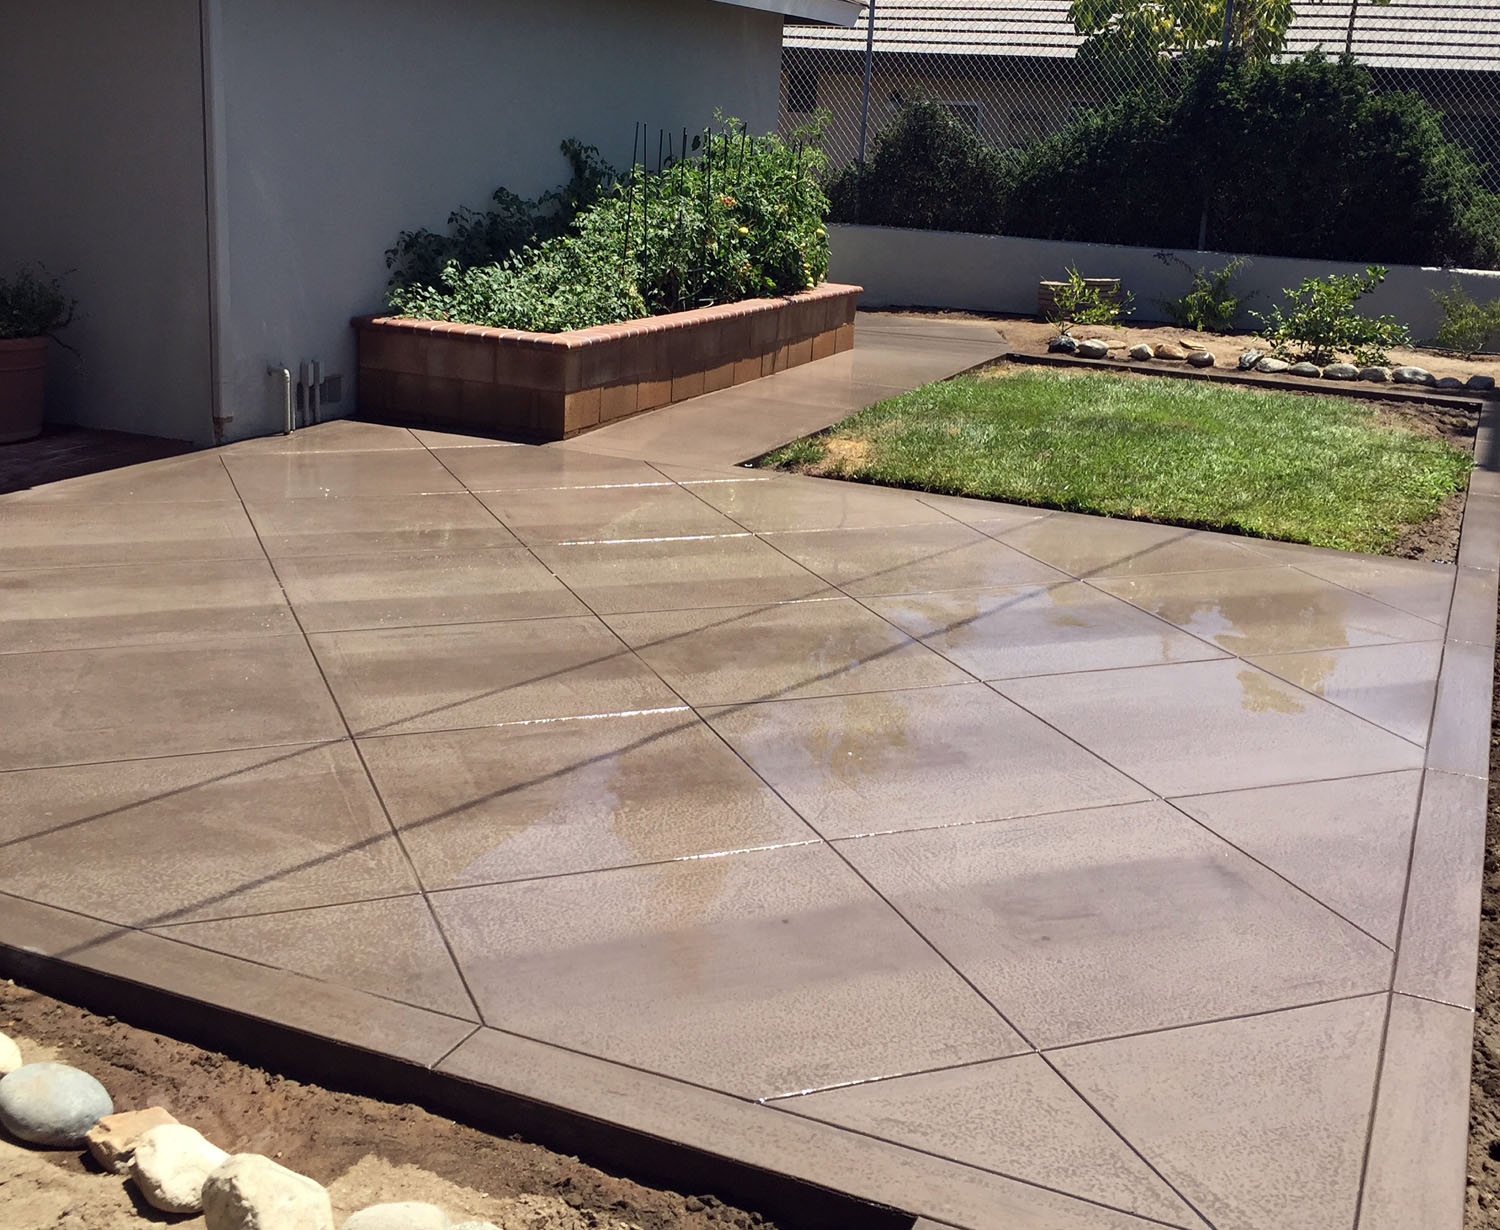 Concrete Patio Paving in Orange County, CA